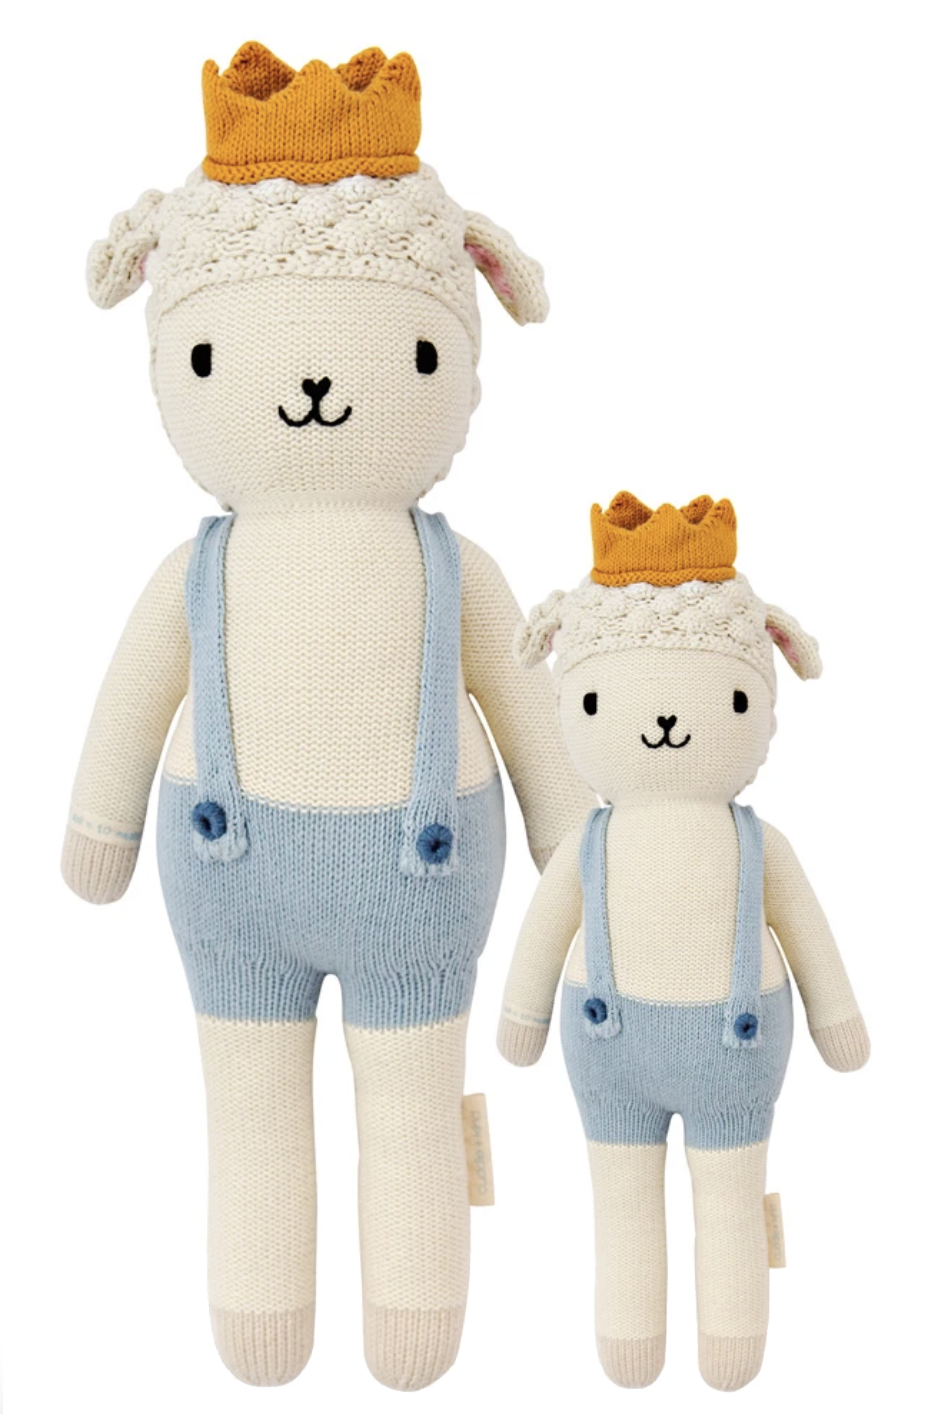 """<p><strong>Cuddle and Kind</strong></p><p>cuddleandkind.com</p><p><strong>$55.00</strong></p><p><a href=""""https://cuddleandkind.com/collections/hand-knit-dolls/products/sebastian-the-lamb"""" rel=""""nofollow noopener"""" target=""""_blank"""" data-ylk=""""slk:SHOP IT"""" class=""""link rapid-noclick-resp"""">SHOP IT</a></p><p>I don't have kids, but this is already on my wishlist to get for myself and my friends when little ones start arriving. All the premium cotton dolls are handcrafted in Peru and with each purchase of a doll, the brand helps provide <a href=""""https://cuddleandkind.com/pages/1-doll-10-meals"""" rel=""""nofollow noopener"""" target=""""_blank"""" data-ylk=""""slk:10 meals to children"""" class=""""link rapid-noclick-resp"""">10 meals to children</a> in need in North America and around the world. </p>"""